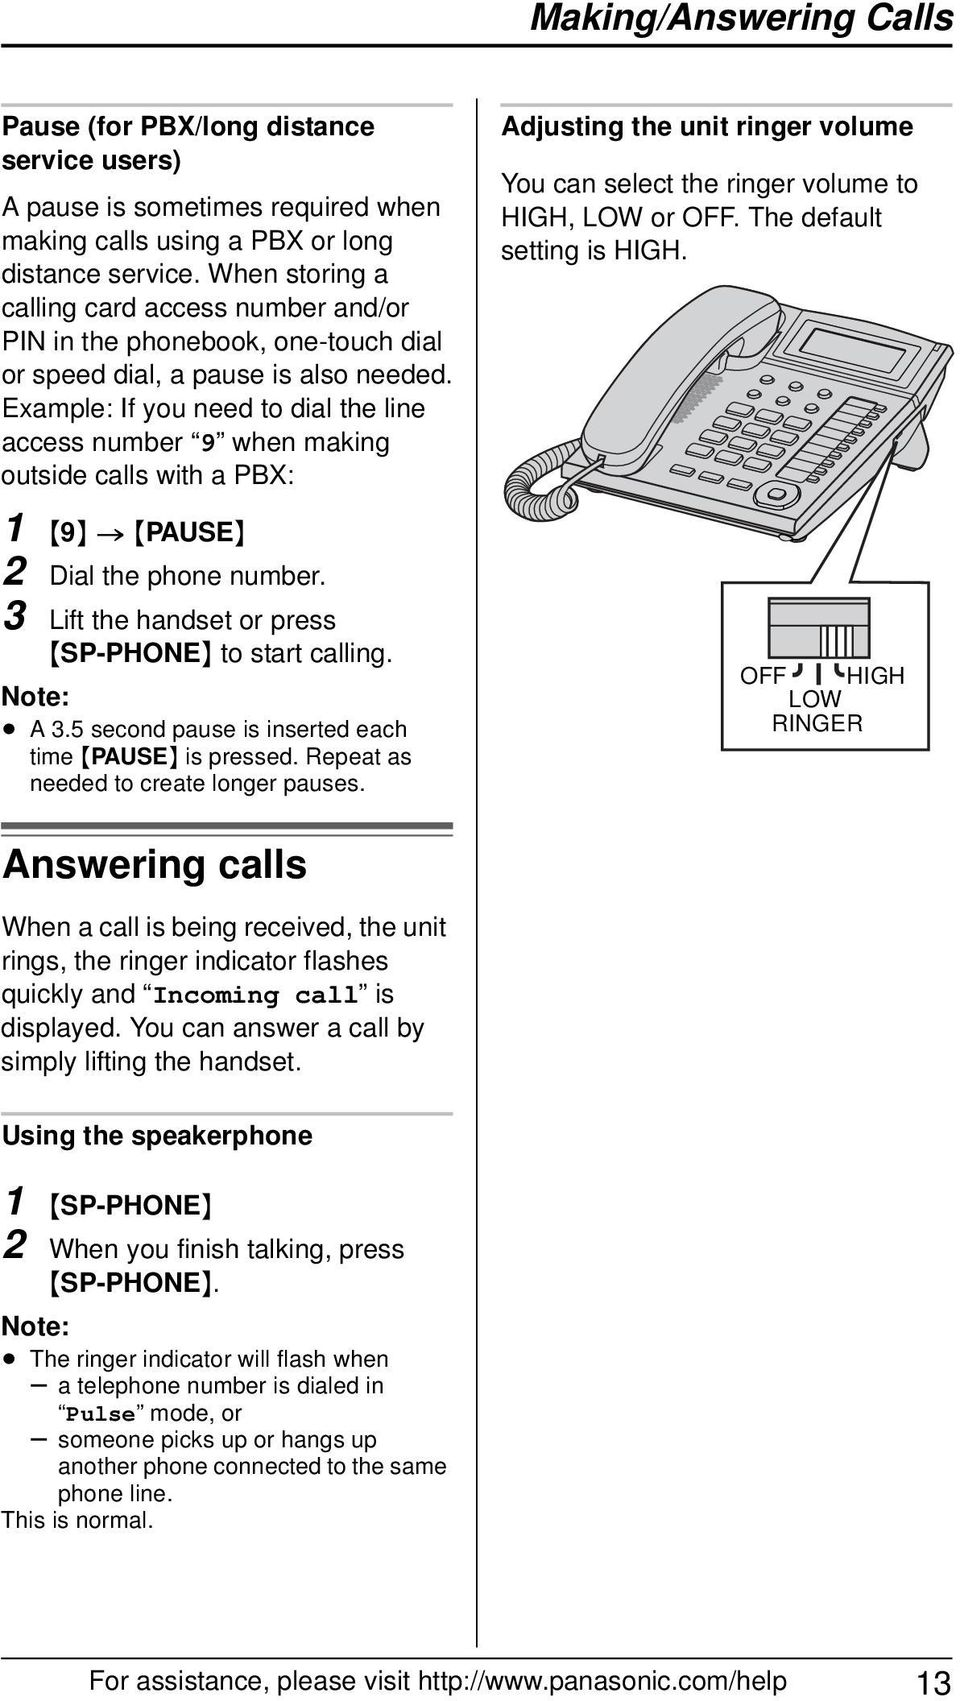 Example: If you need to dial the line access number 9 when making outside calls with a PBX: 1 {9} > {PAUSE} 2 Dial the phone number. 3 Lift the handset or press {SP-PHONE} to start calling. Note: A 3.